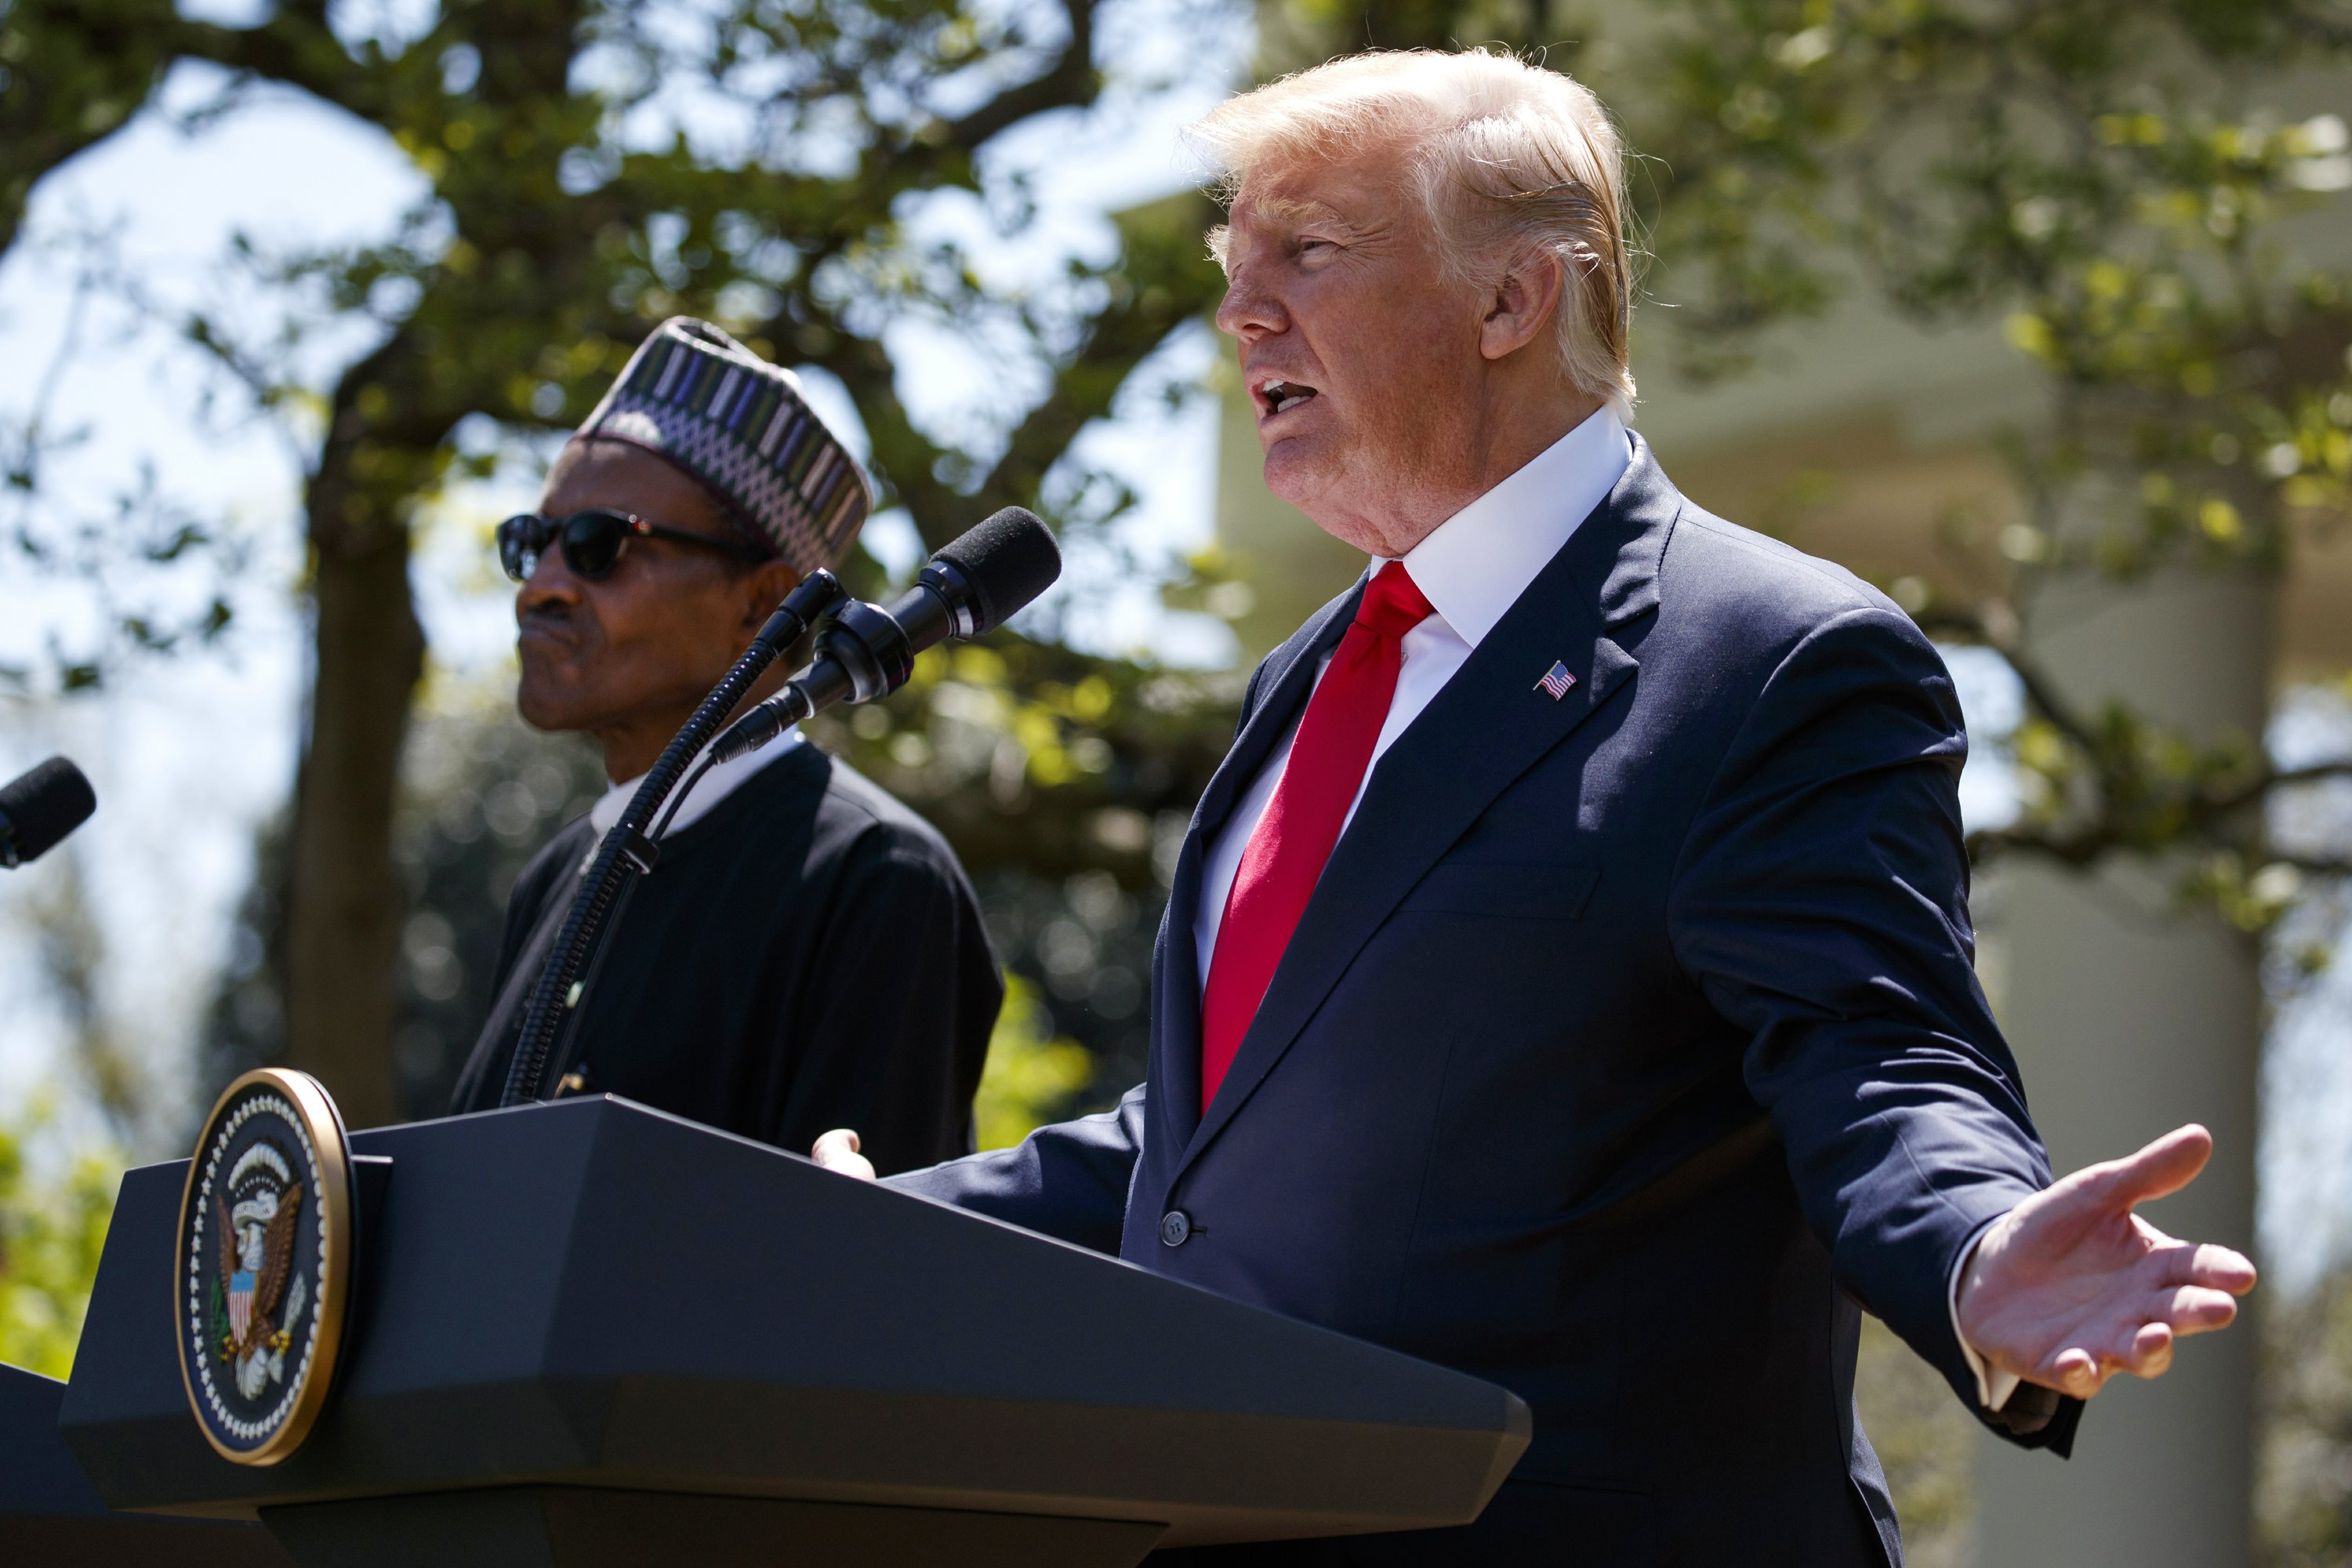 President Donald Trump on terrorism and persecuted Christians in Nigeria